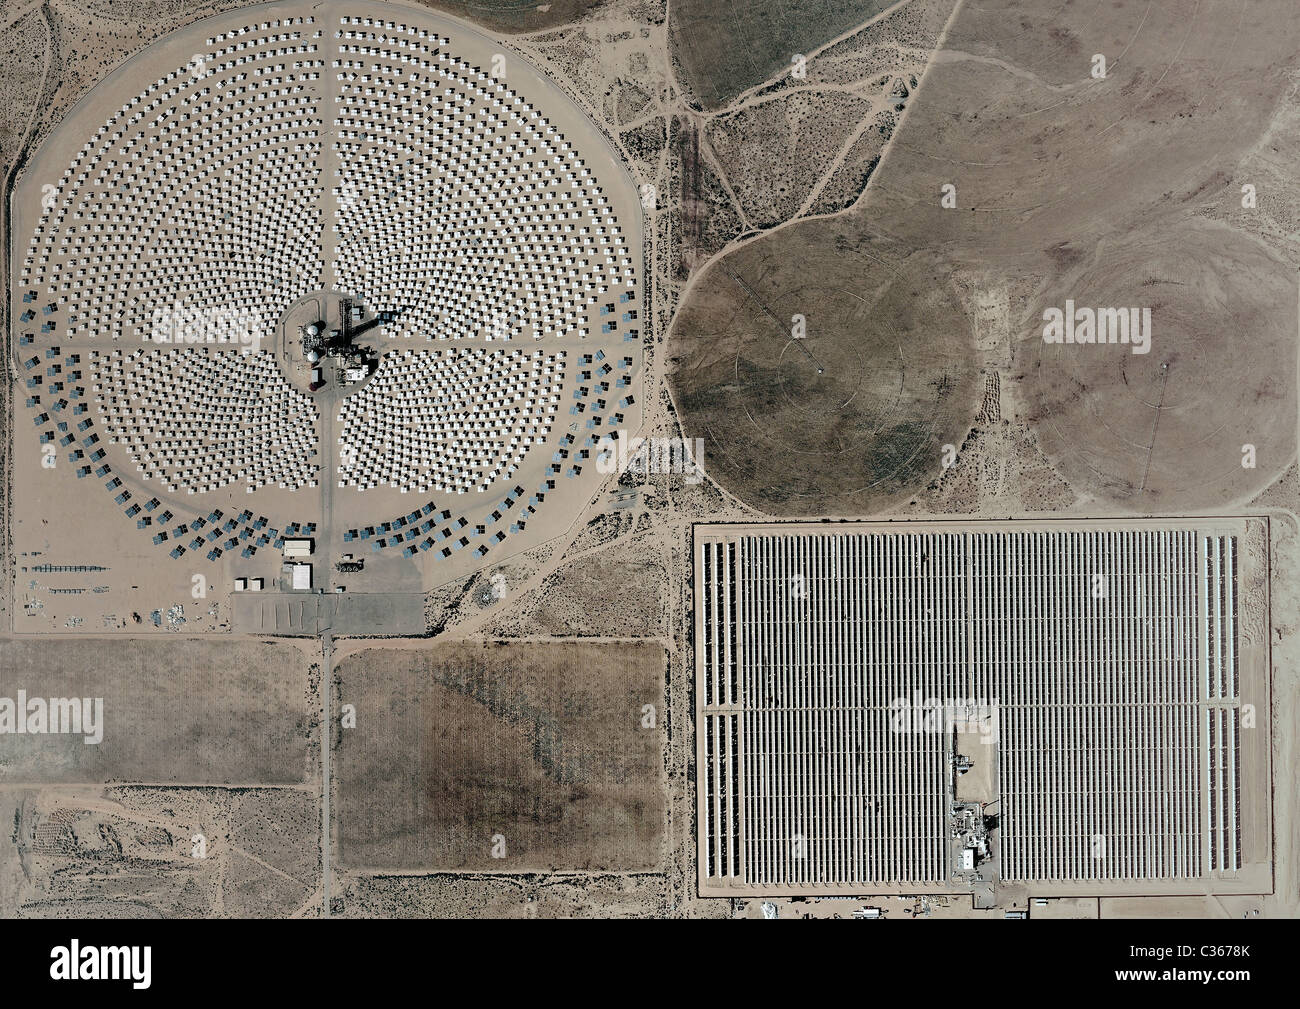 aerial map view above Solar Two electrical energy generation project mirrored heliostats Daggett California - Stock Image